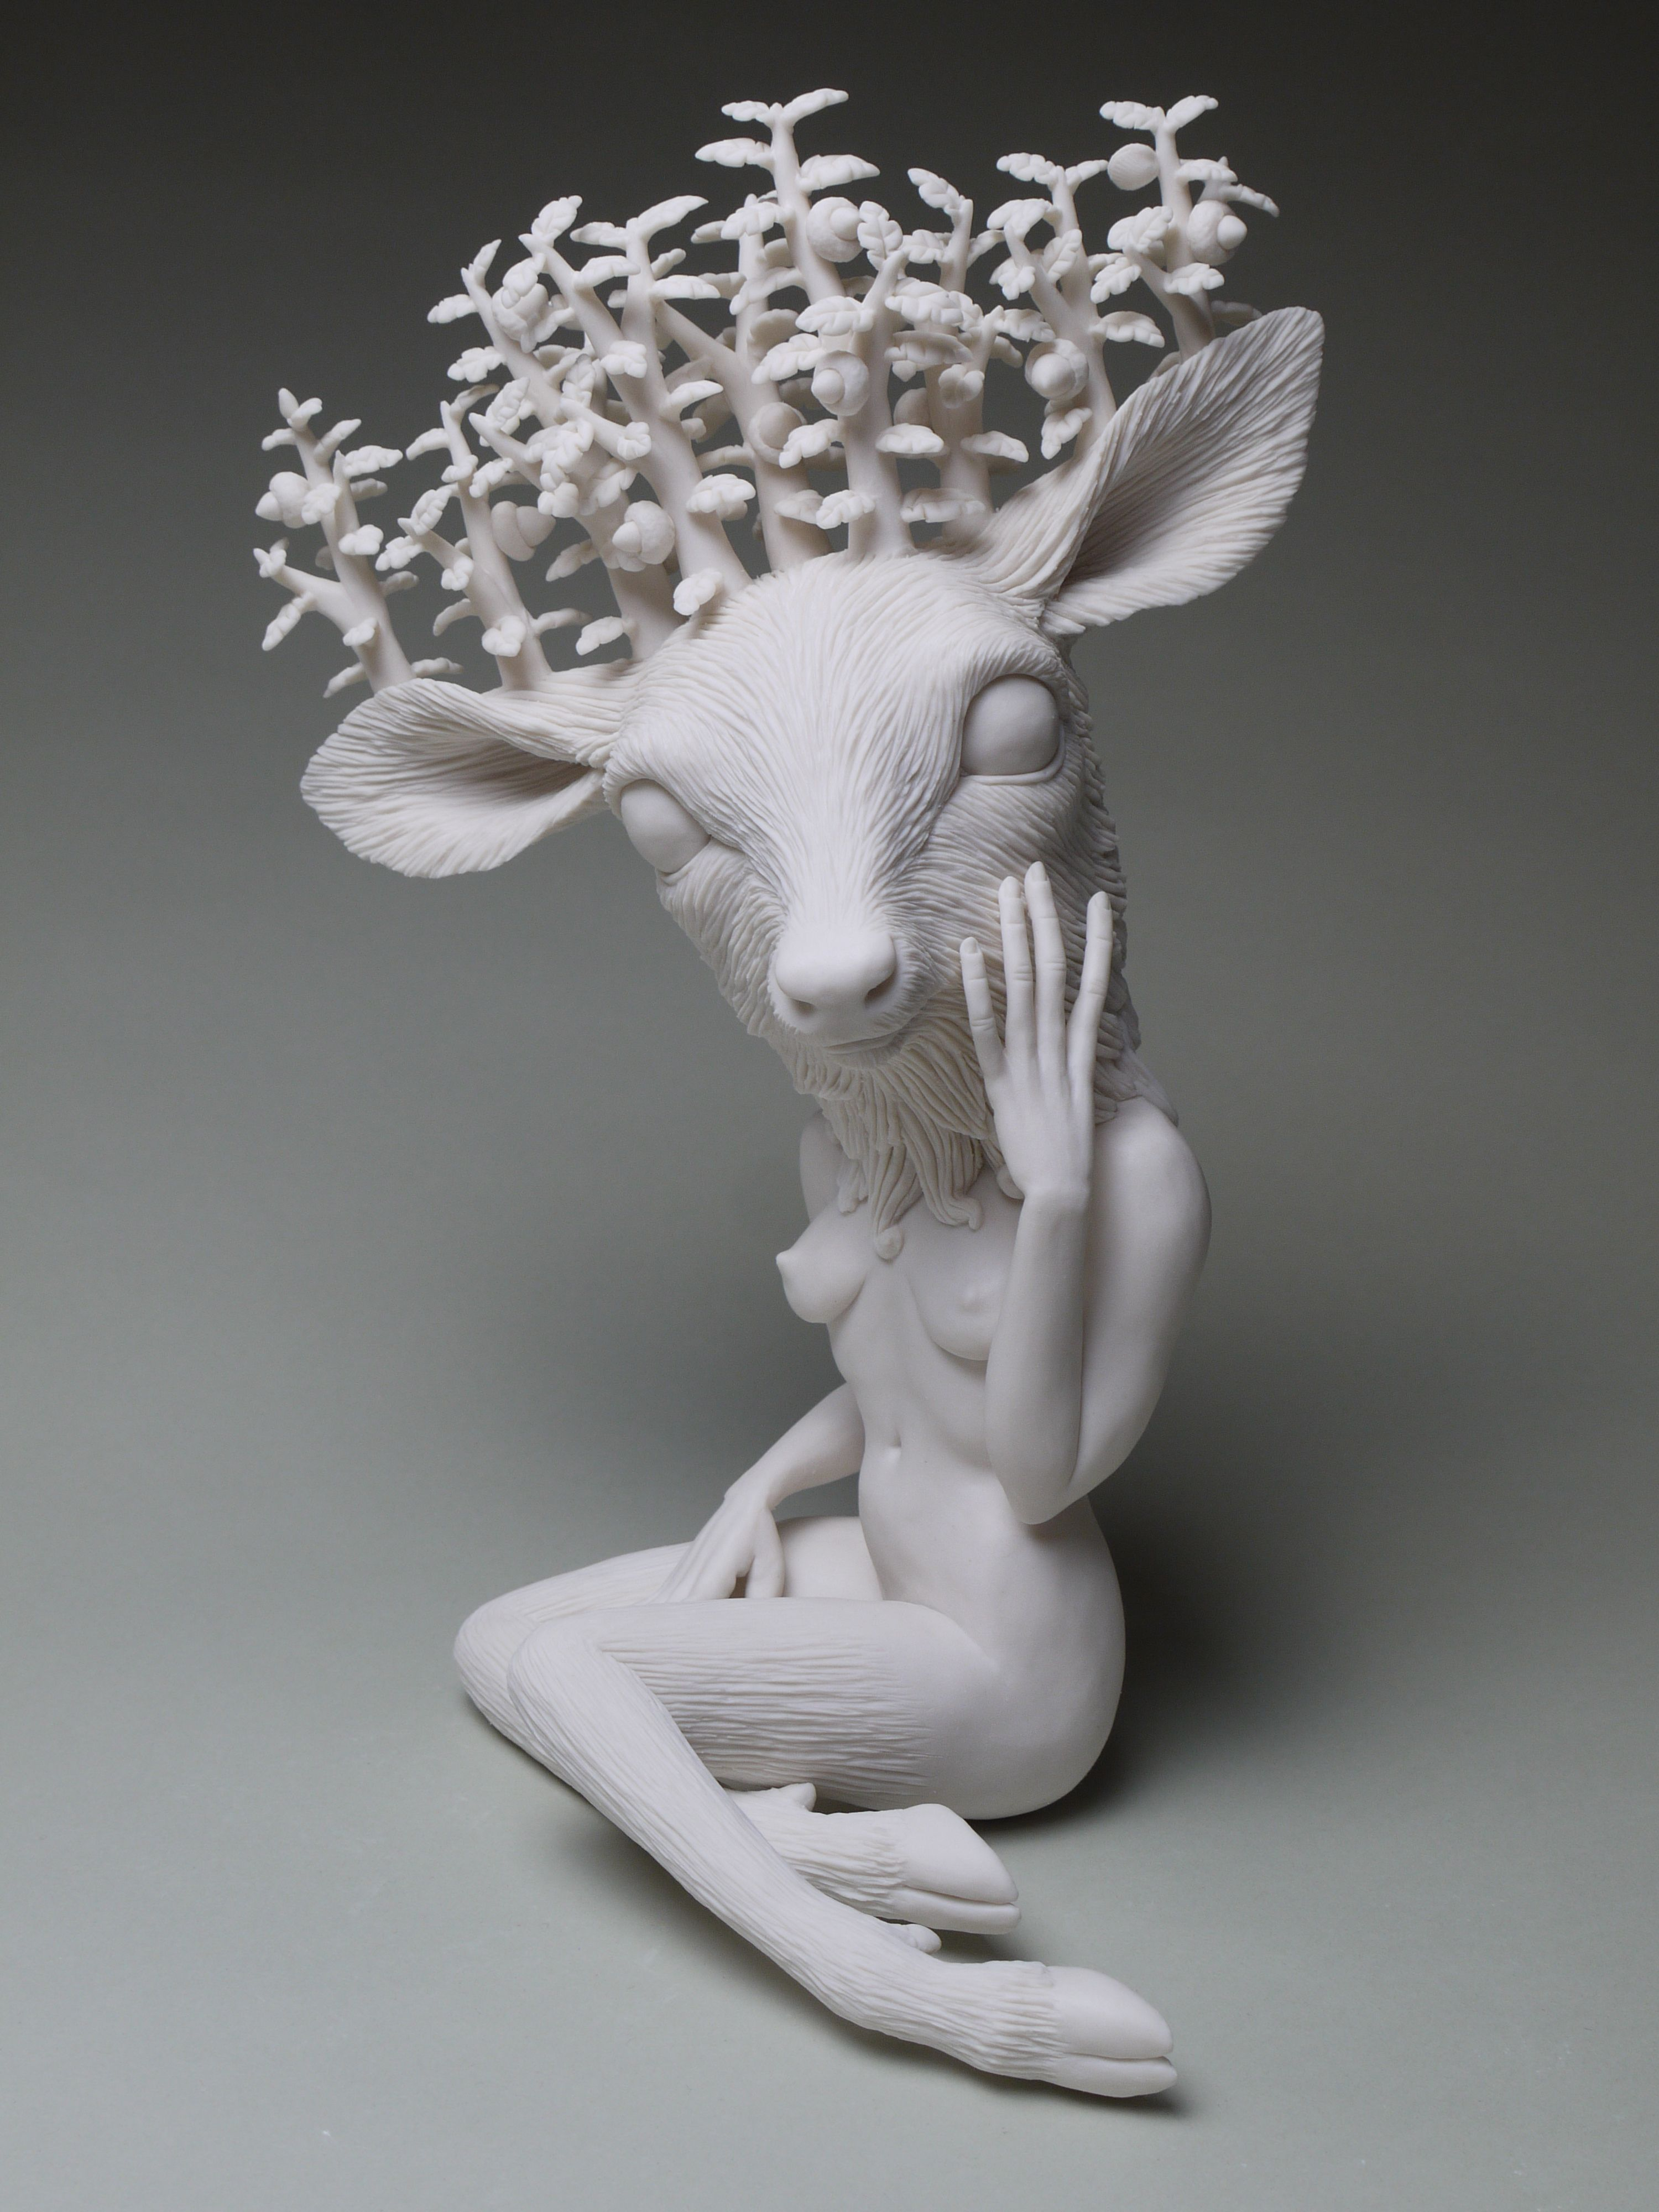 Crystal Morey S New Porcelain Sculptures Draw From 18th Century With Images Sculpture Sculpture Art Art